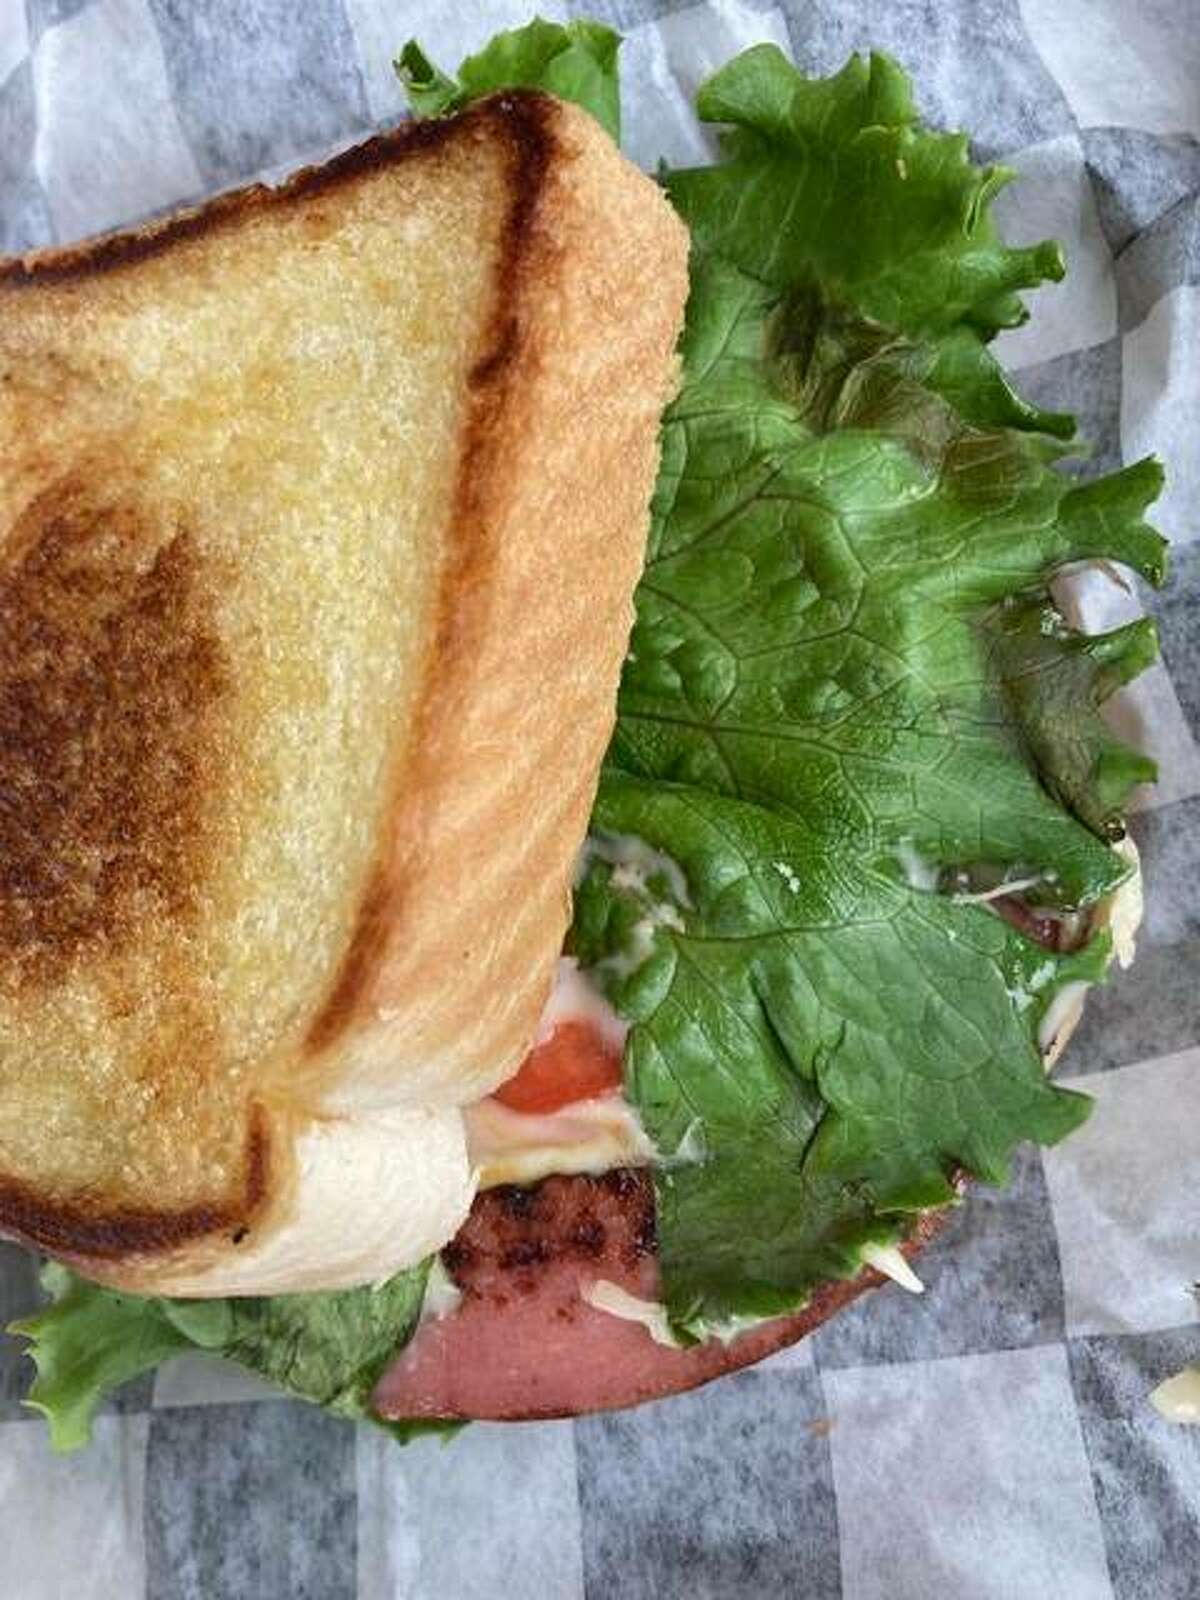 The James Dean sandwich, with two slices of Shake Rattle & Roll Drive-In's thick-cut bologna with lettuce, mayo, tomato and pepper jack cheese, toasted to perfection on Texas toast.